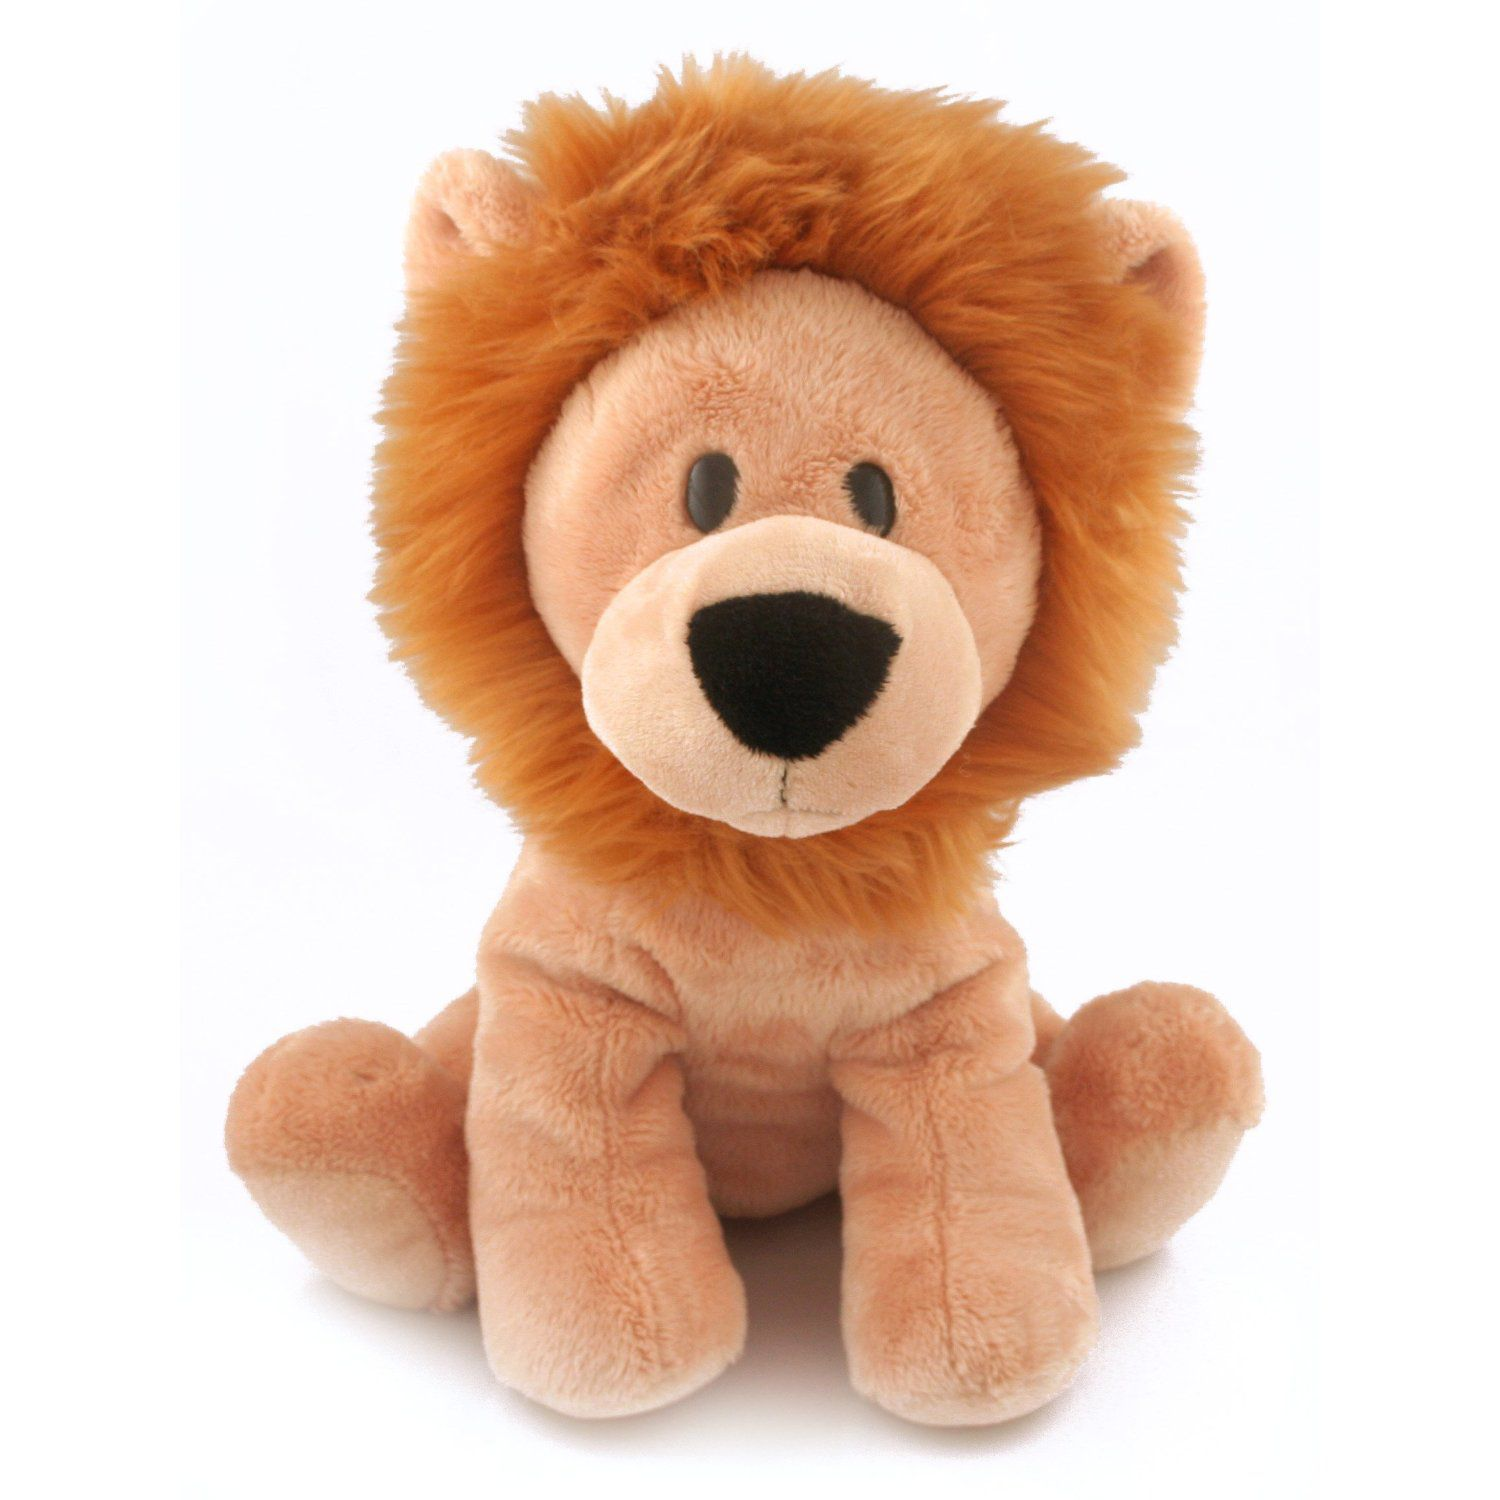 Hide & Seek Safari JR. - Lion